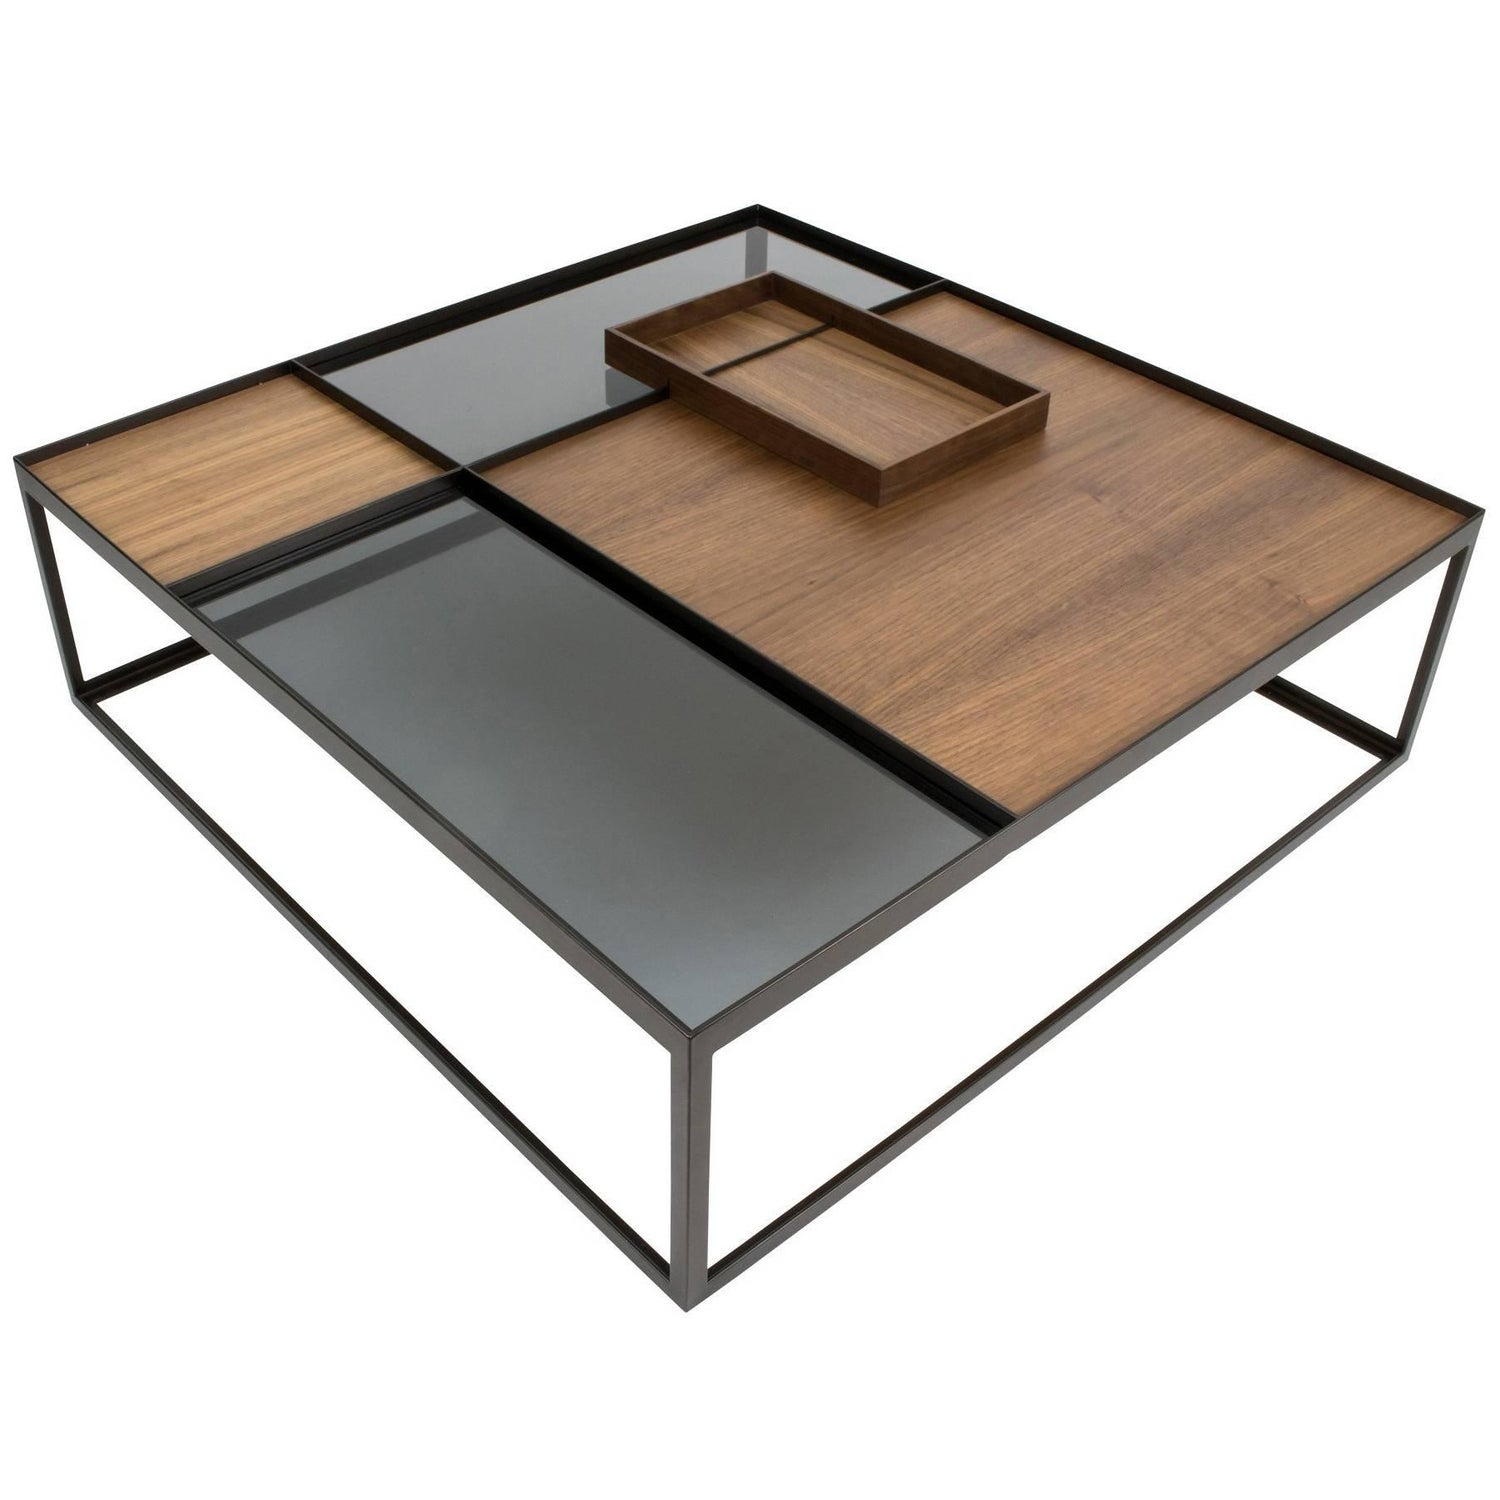 Stay Table Contemporary Walnut and Glass Architectural Coffee